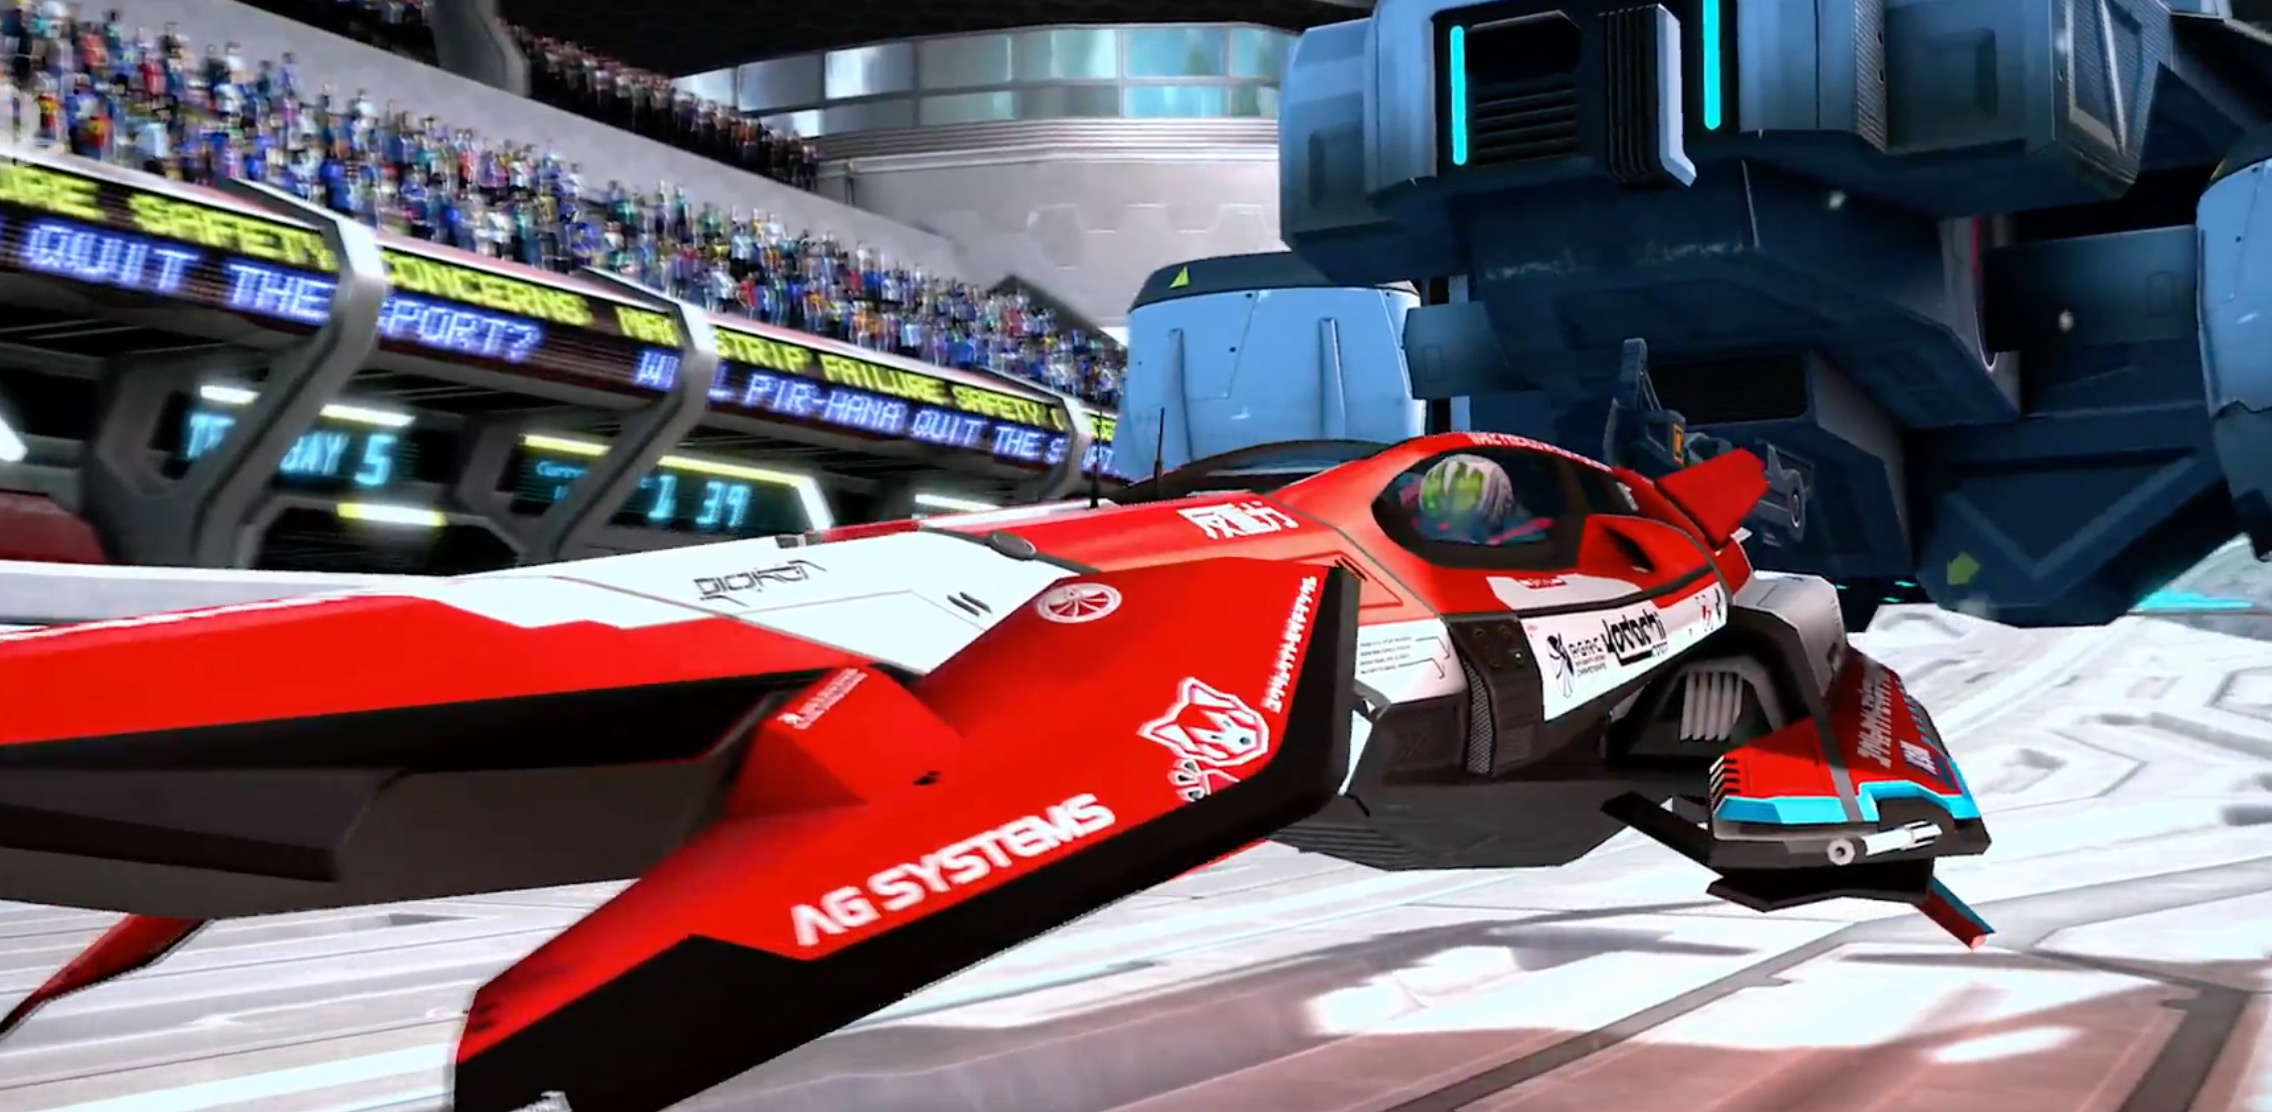 WipEout on PS4 is getting a PSVR patch screenshot